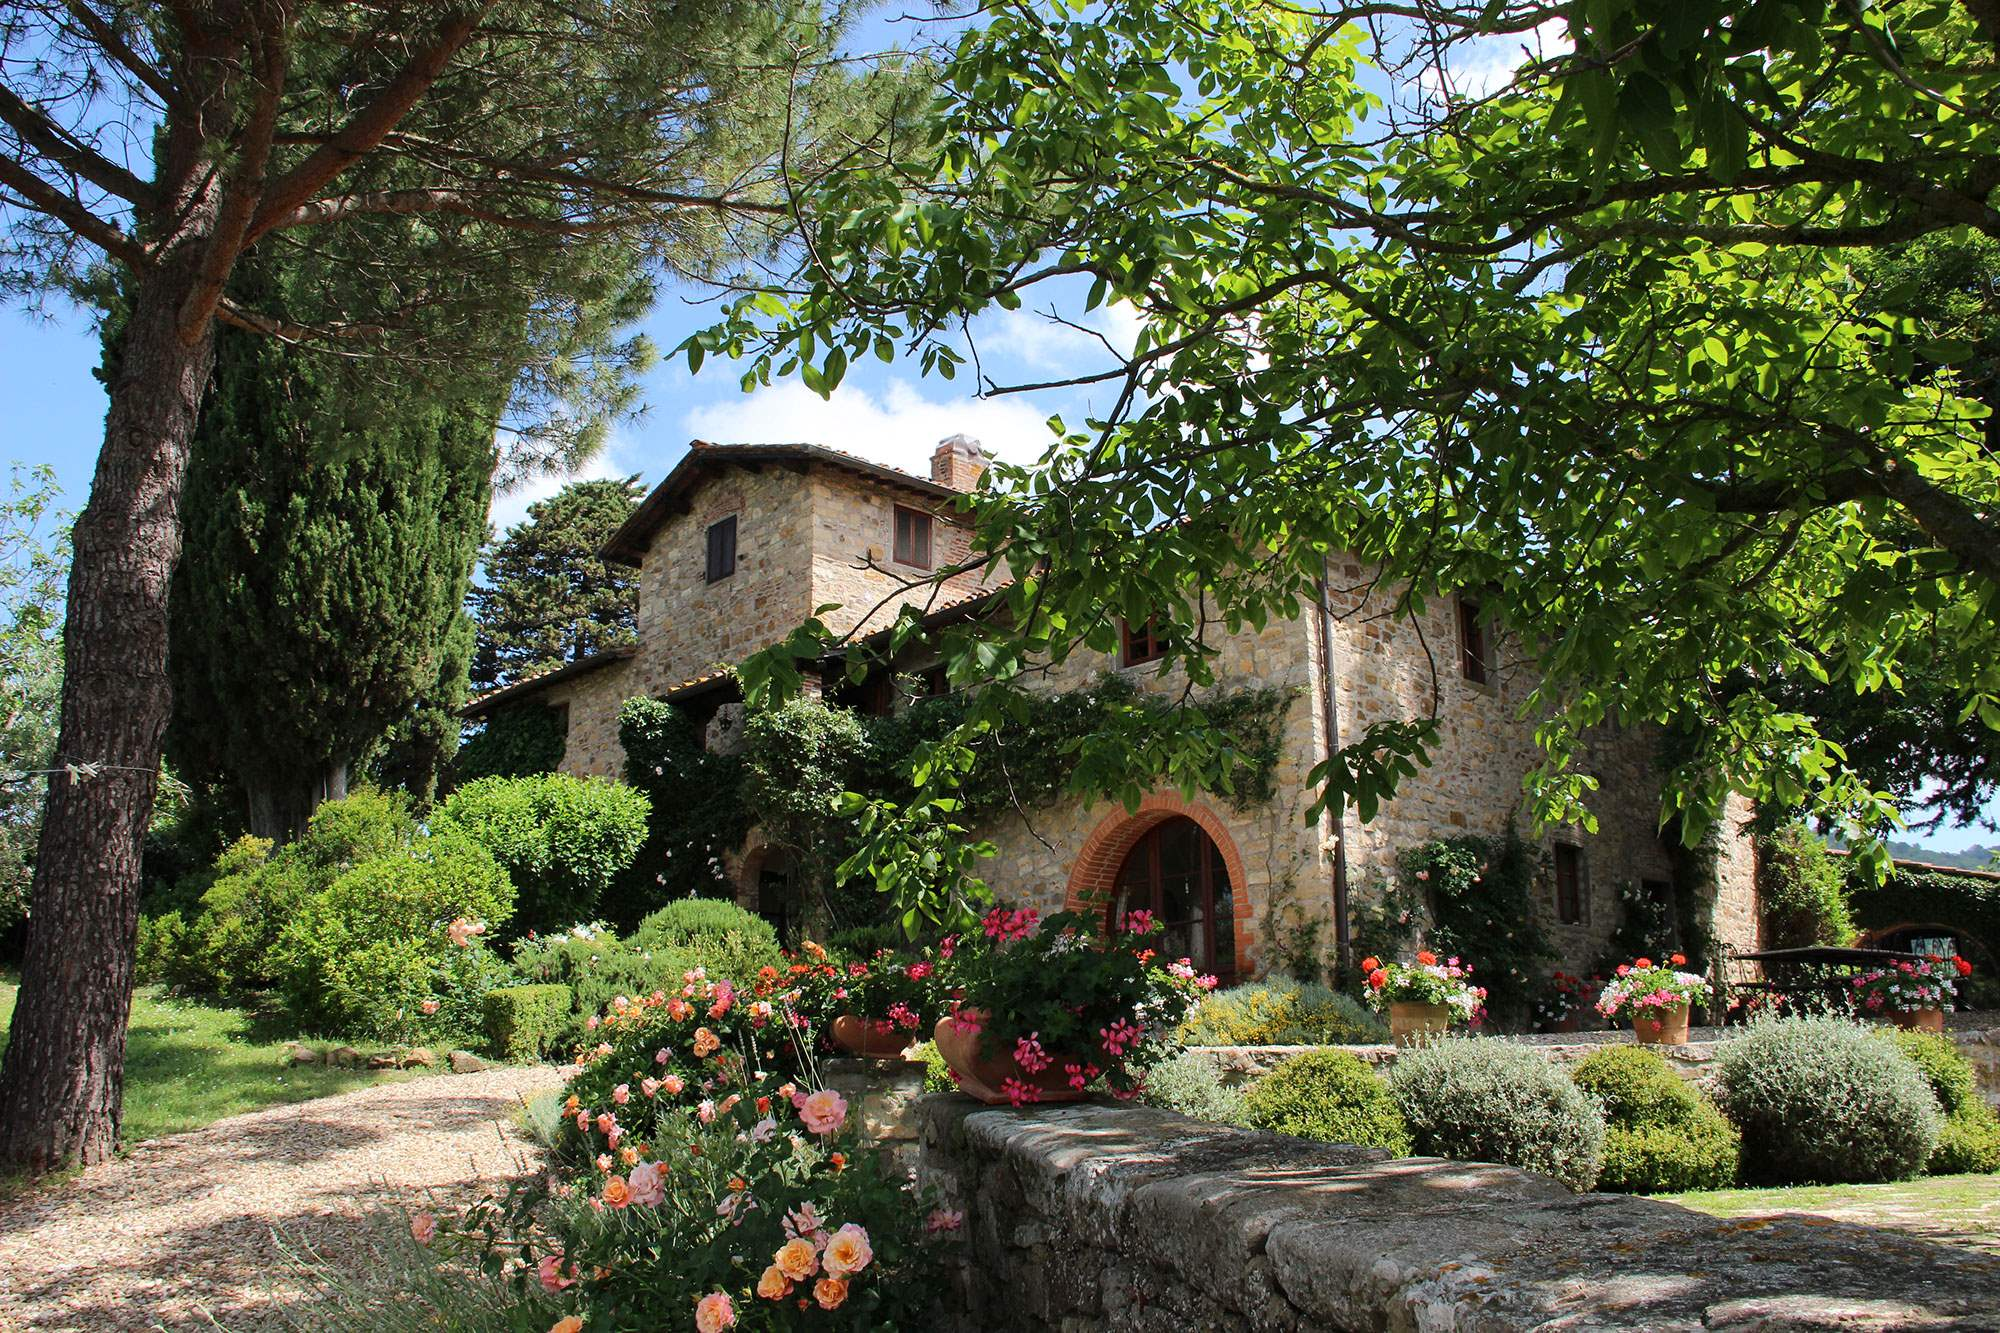 Villa Giacinto, 6 Bedroom rate, 6 bedroom villa in Chianti & Countryside, Tuscany Photo #1